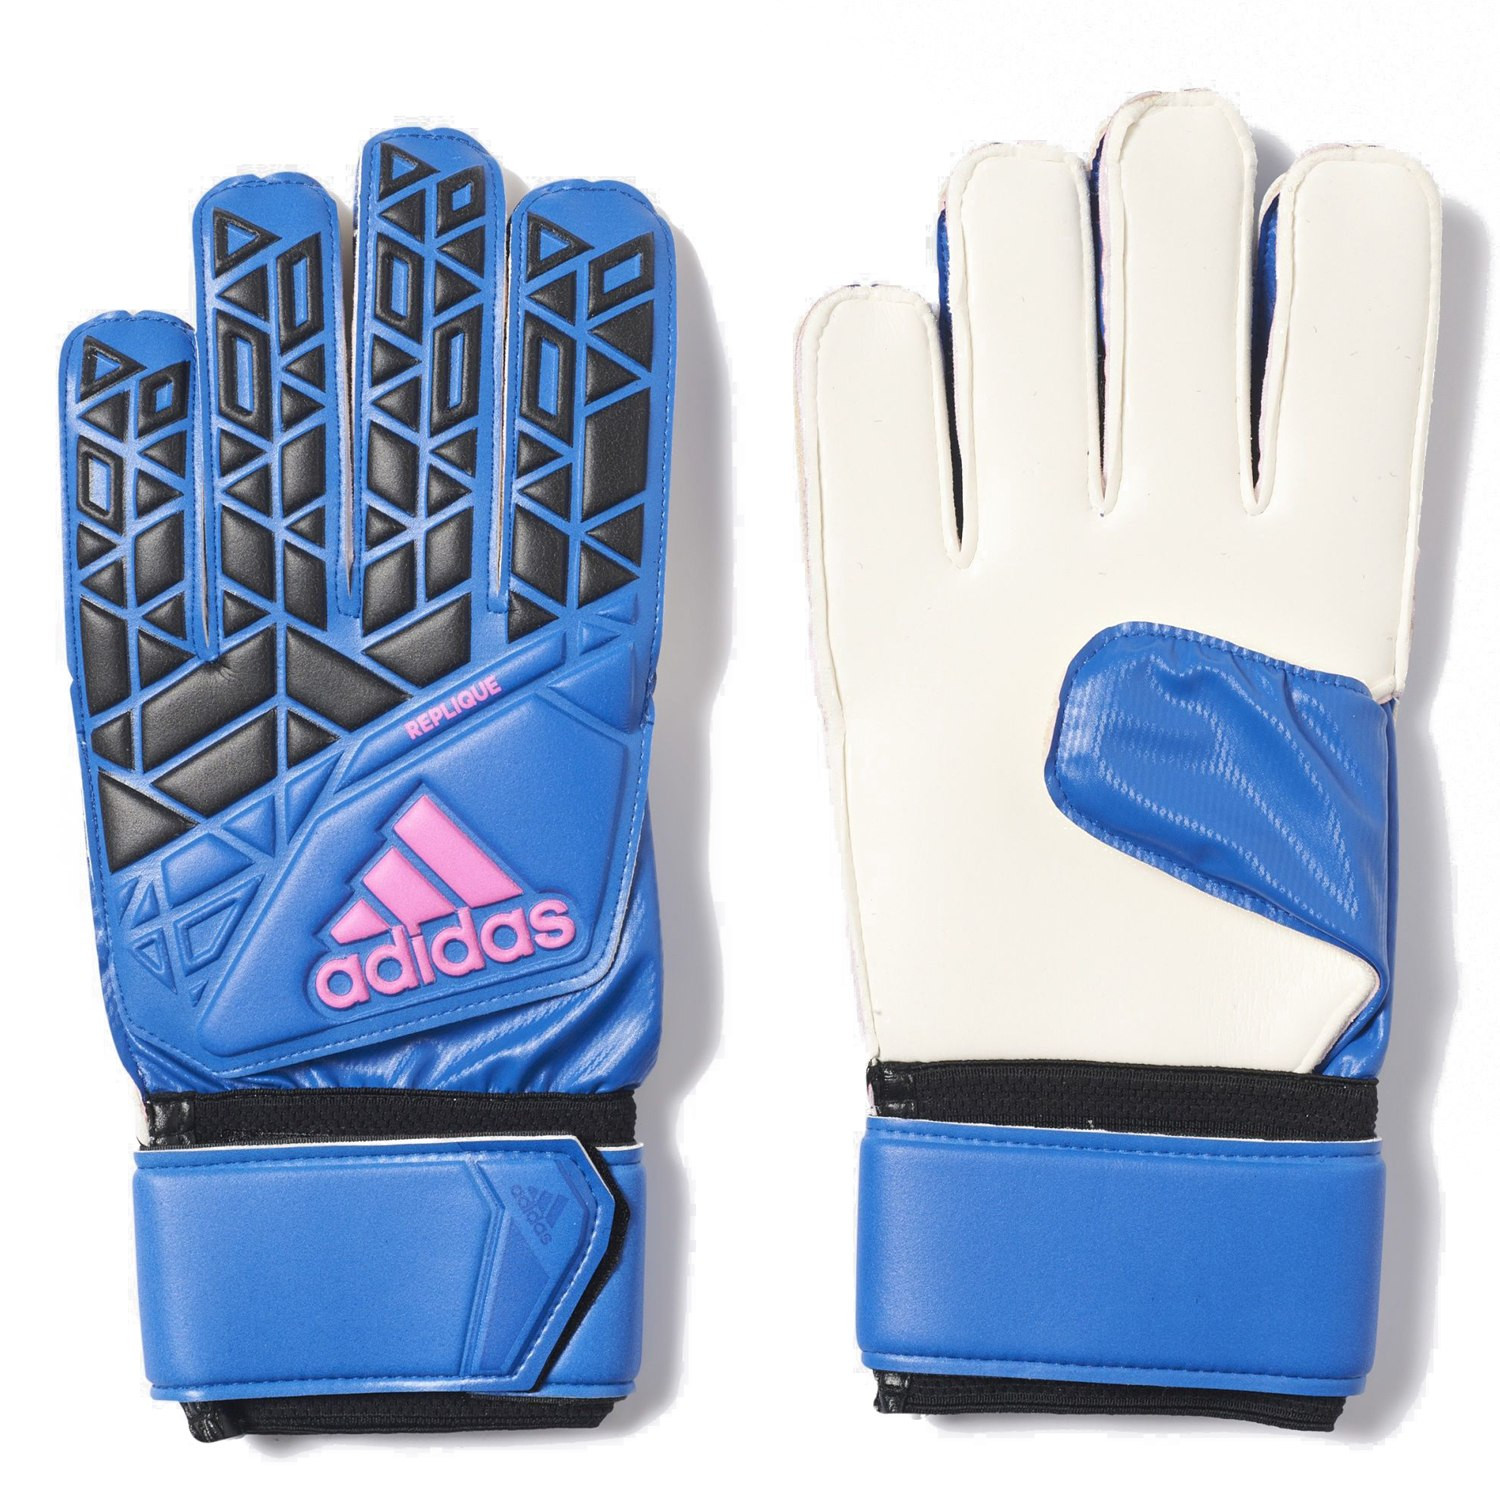 adidas Performance Ace Replique Goalkeeper Gloves (3043600101_24325)